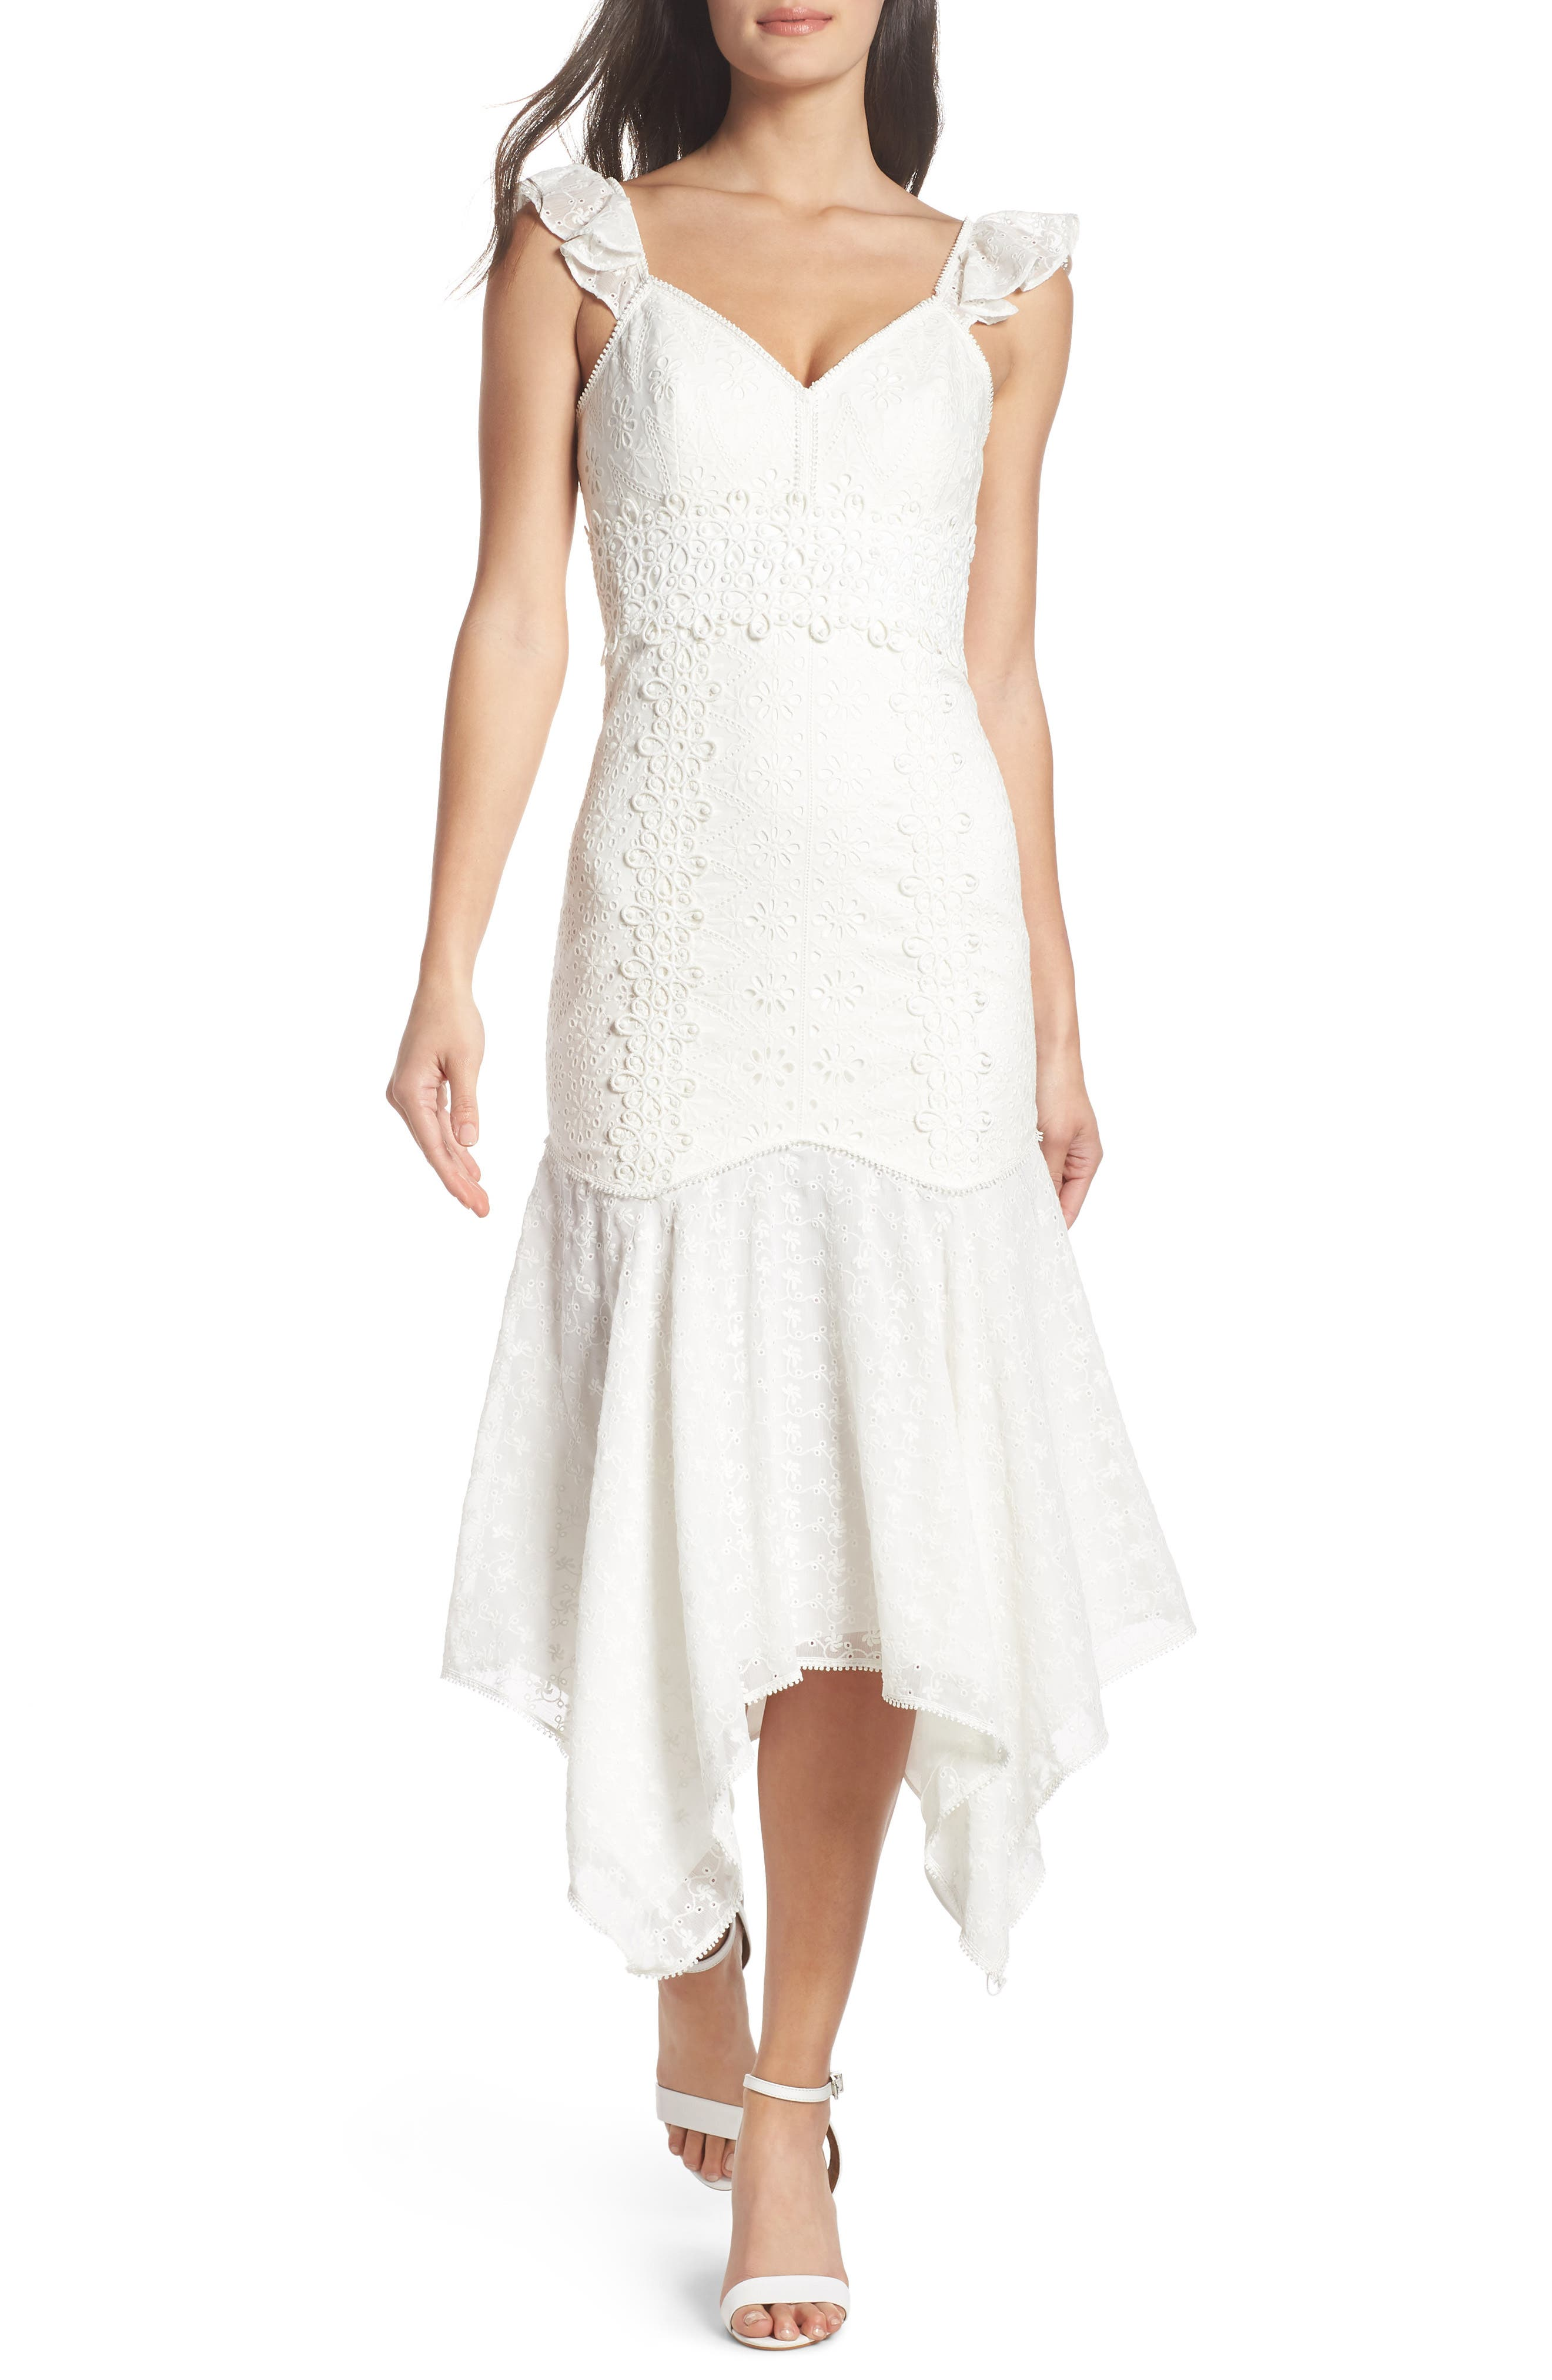 Broderie Anglaise Dress,                             Main thumbnail 1, color,                             White